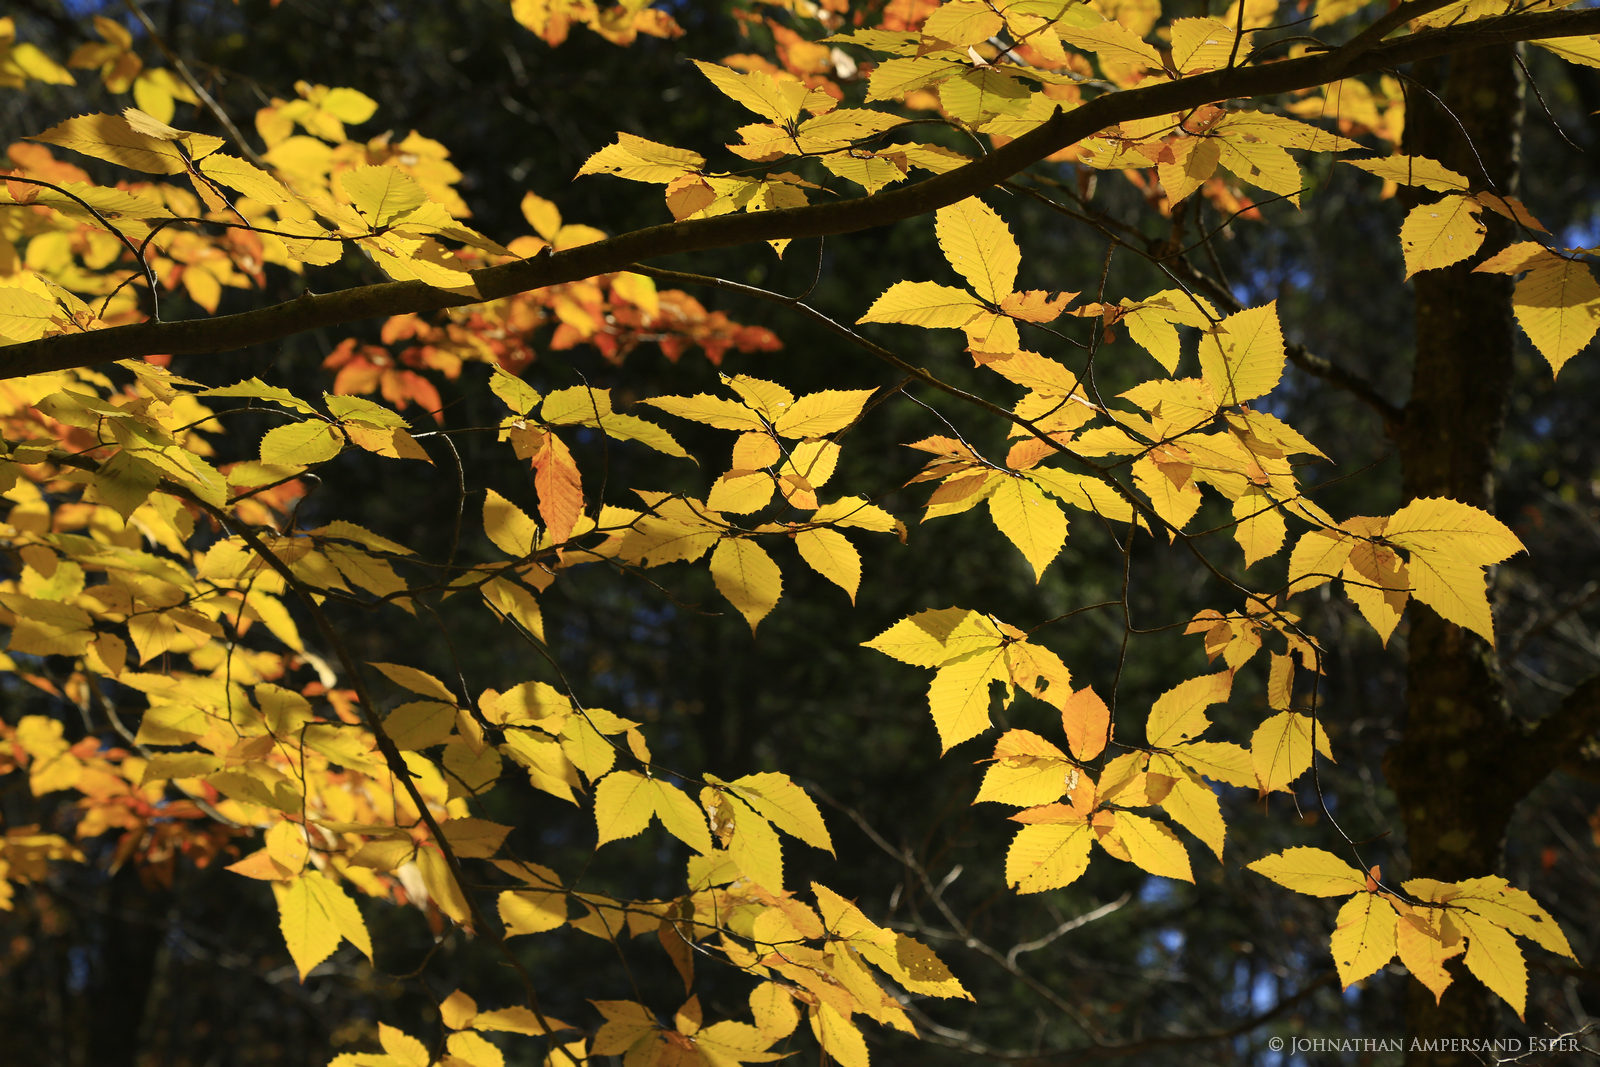 Schroon River,Schroon River property,beech,beech leaves,autumn,2015,Adirondack photography,Adirondack,beech tree,Adirondack Park,fall,foliage,yellow leaves,yellow,, photo